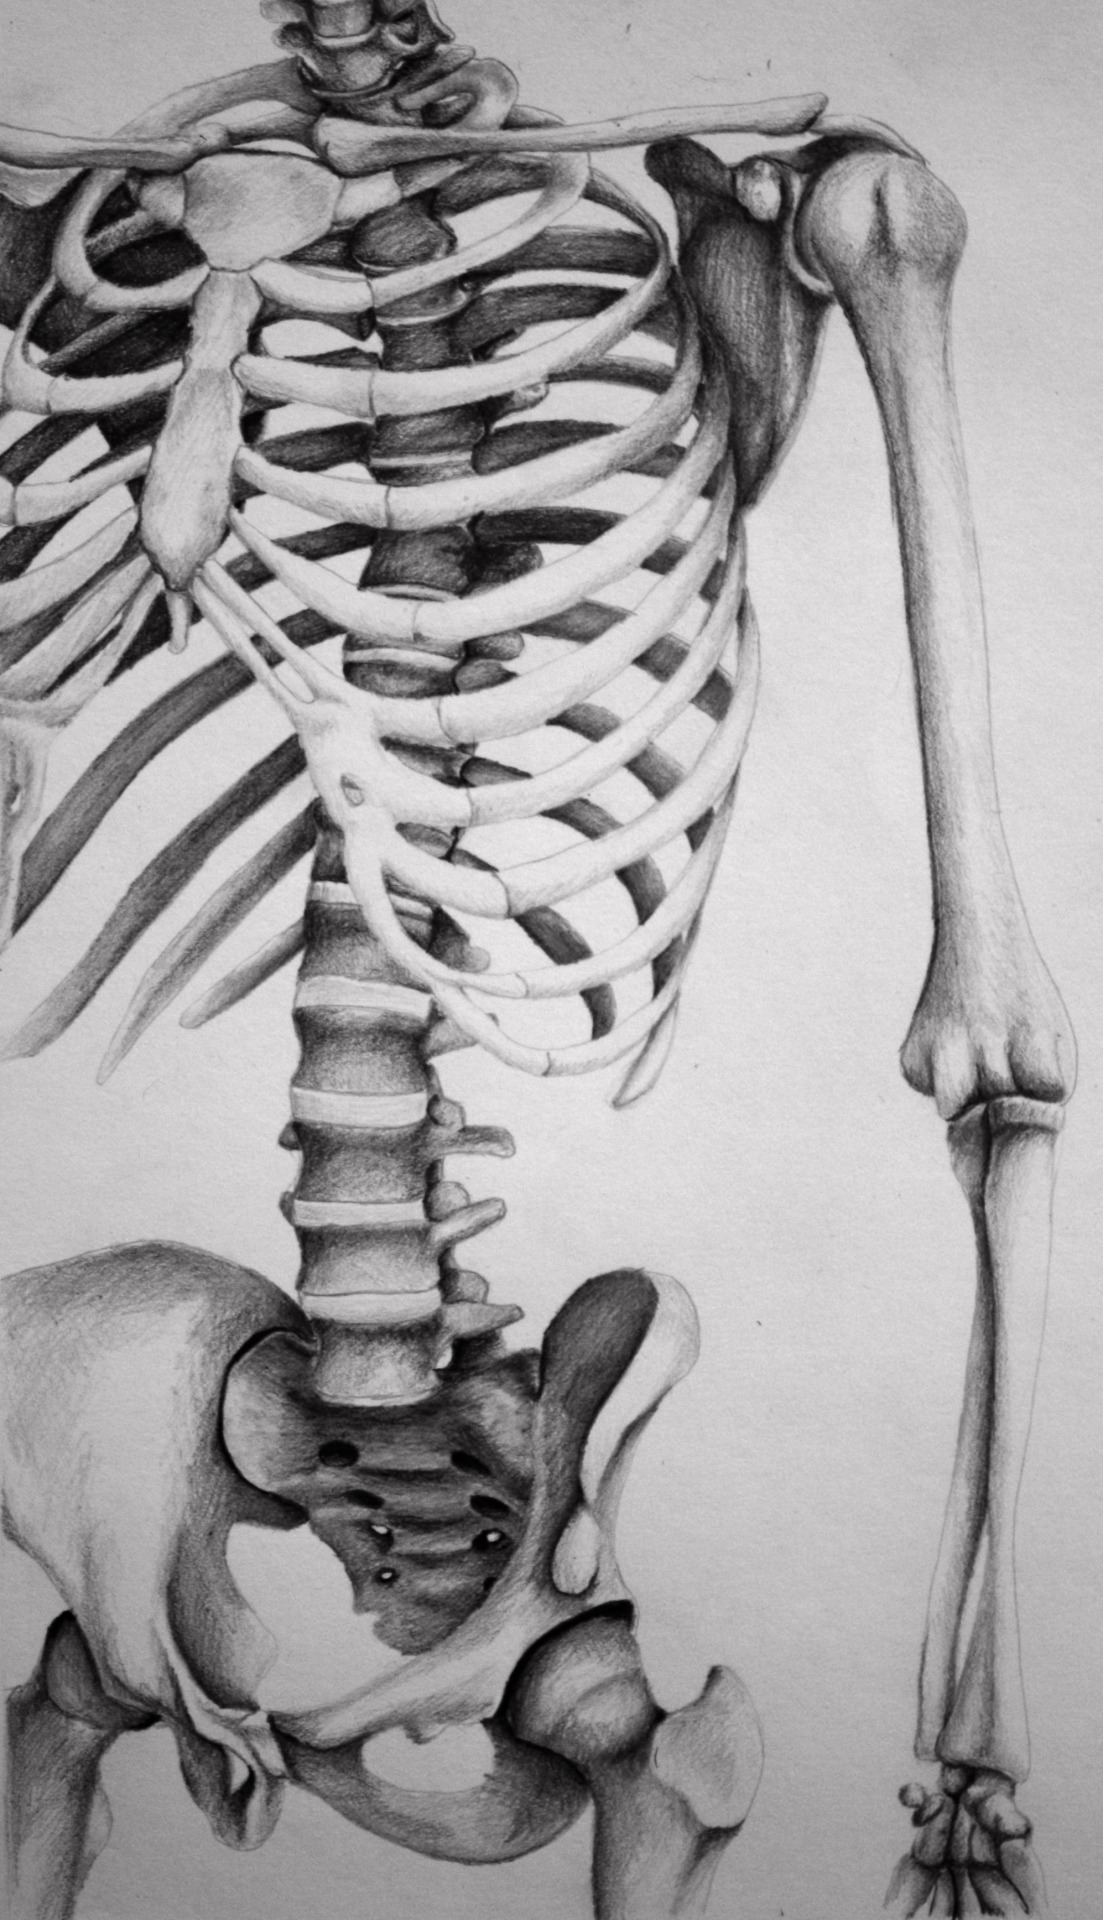 Sleleton clipart pencil work The Skeleton attention unusual compositions